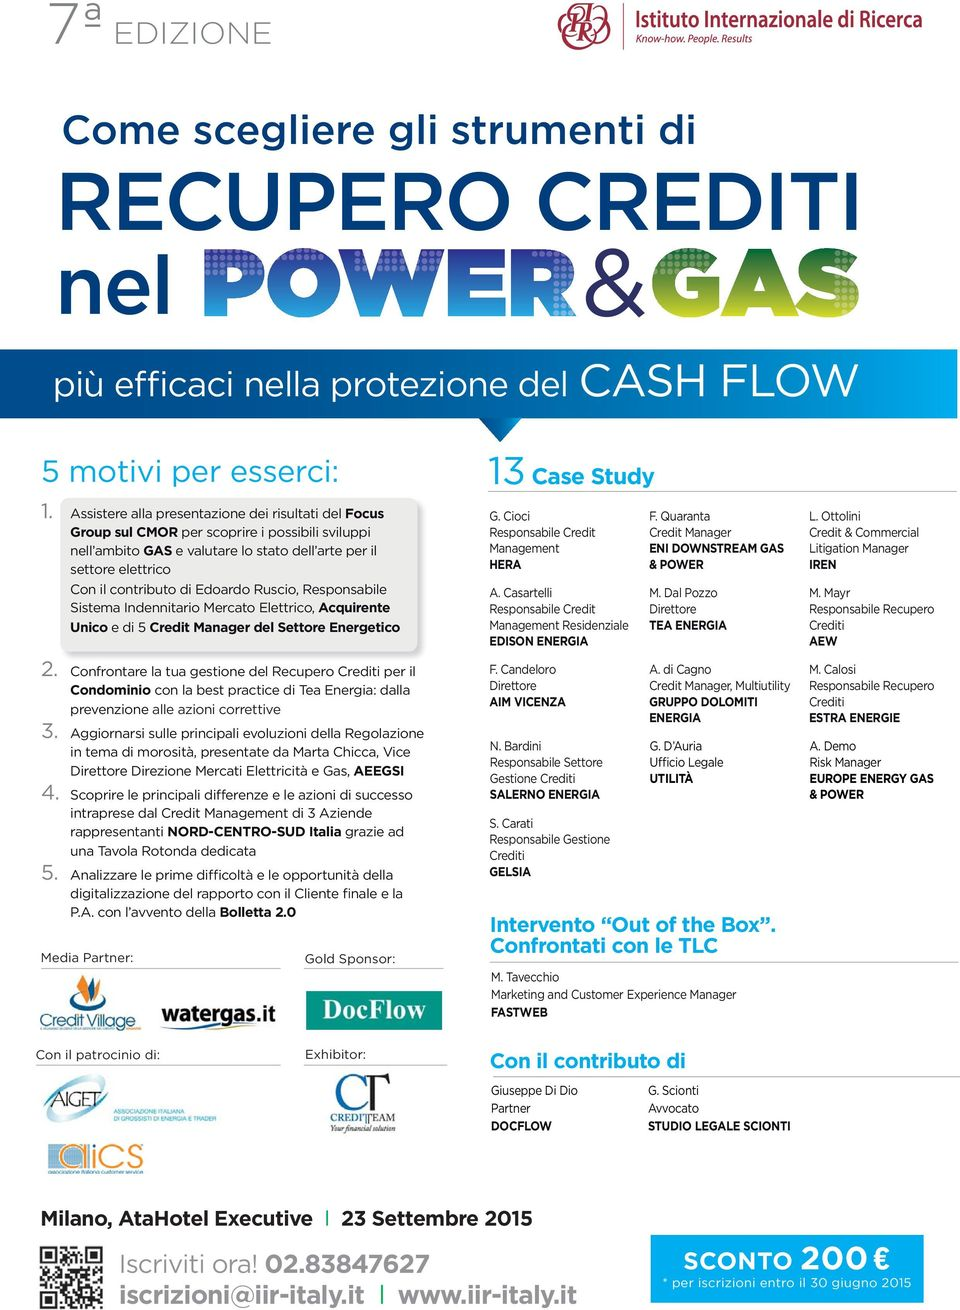 Cioci Responsabile Credit Management HERA F. Quaranta Credit Manager ENI DOWNSTREAM GAS & POWER L.